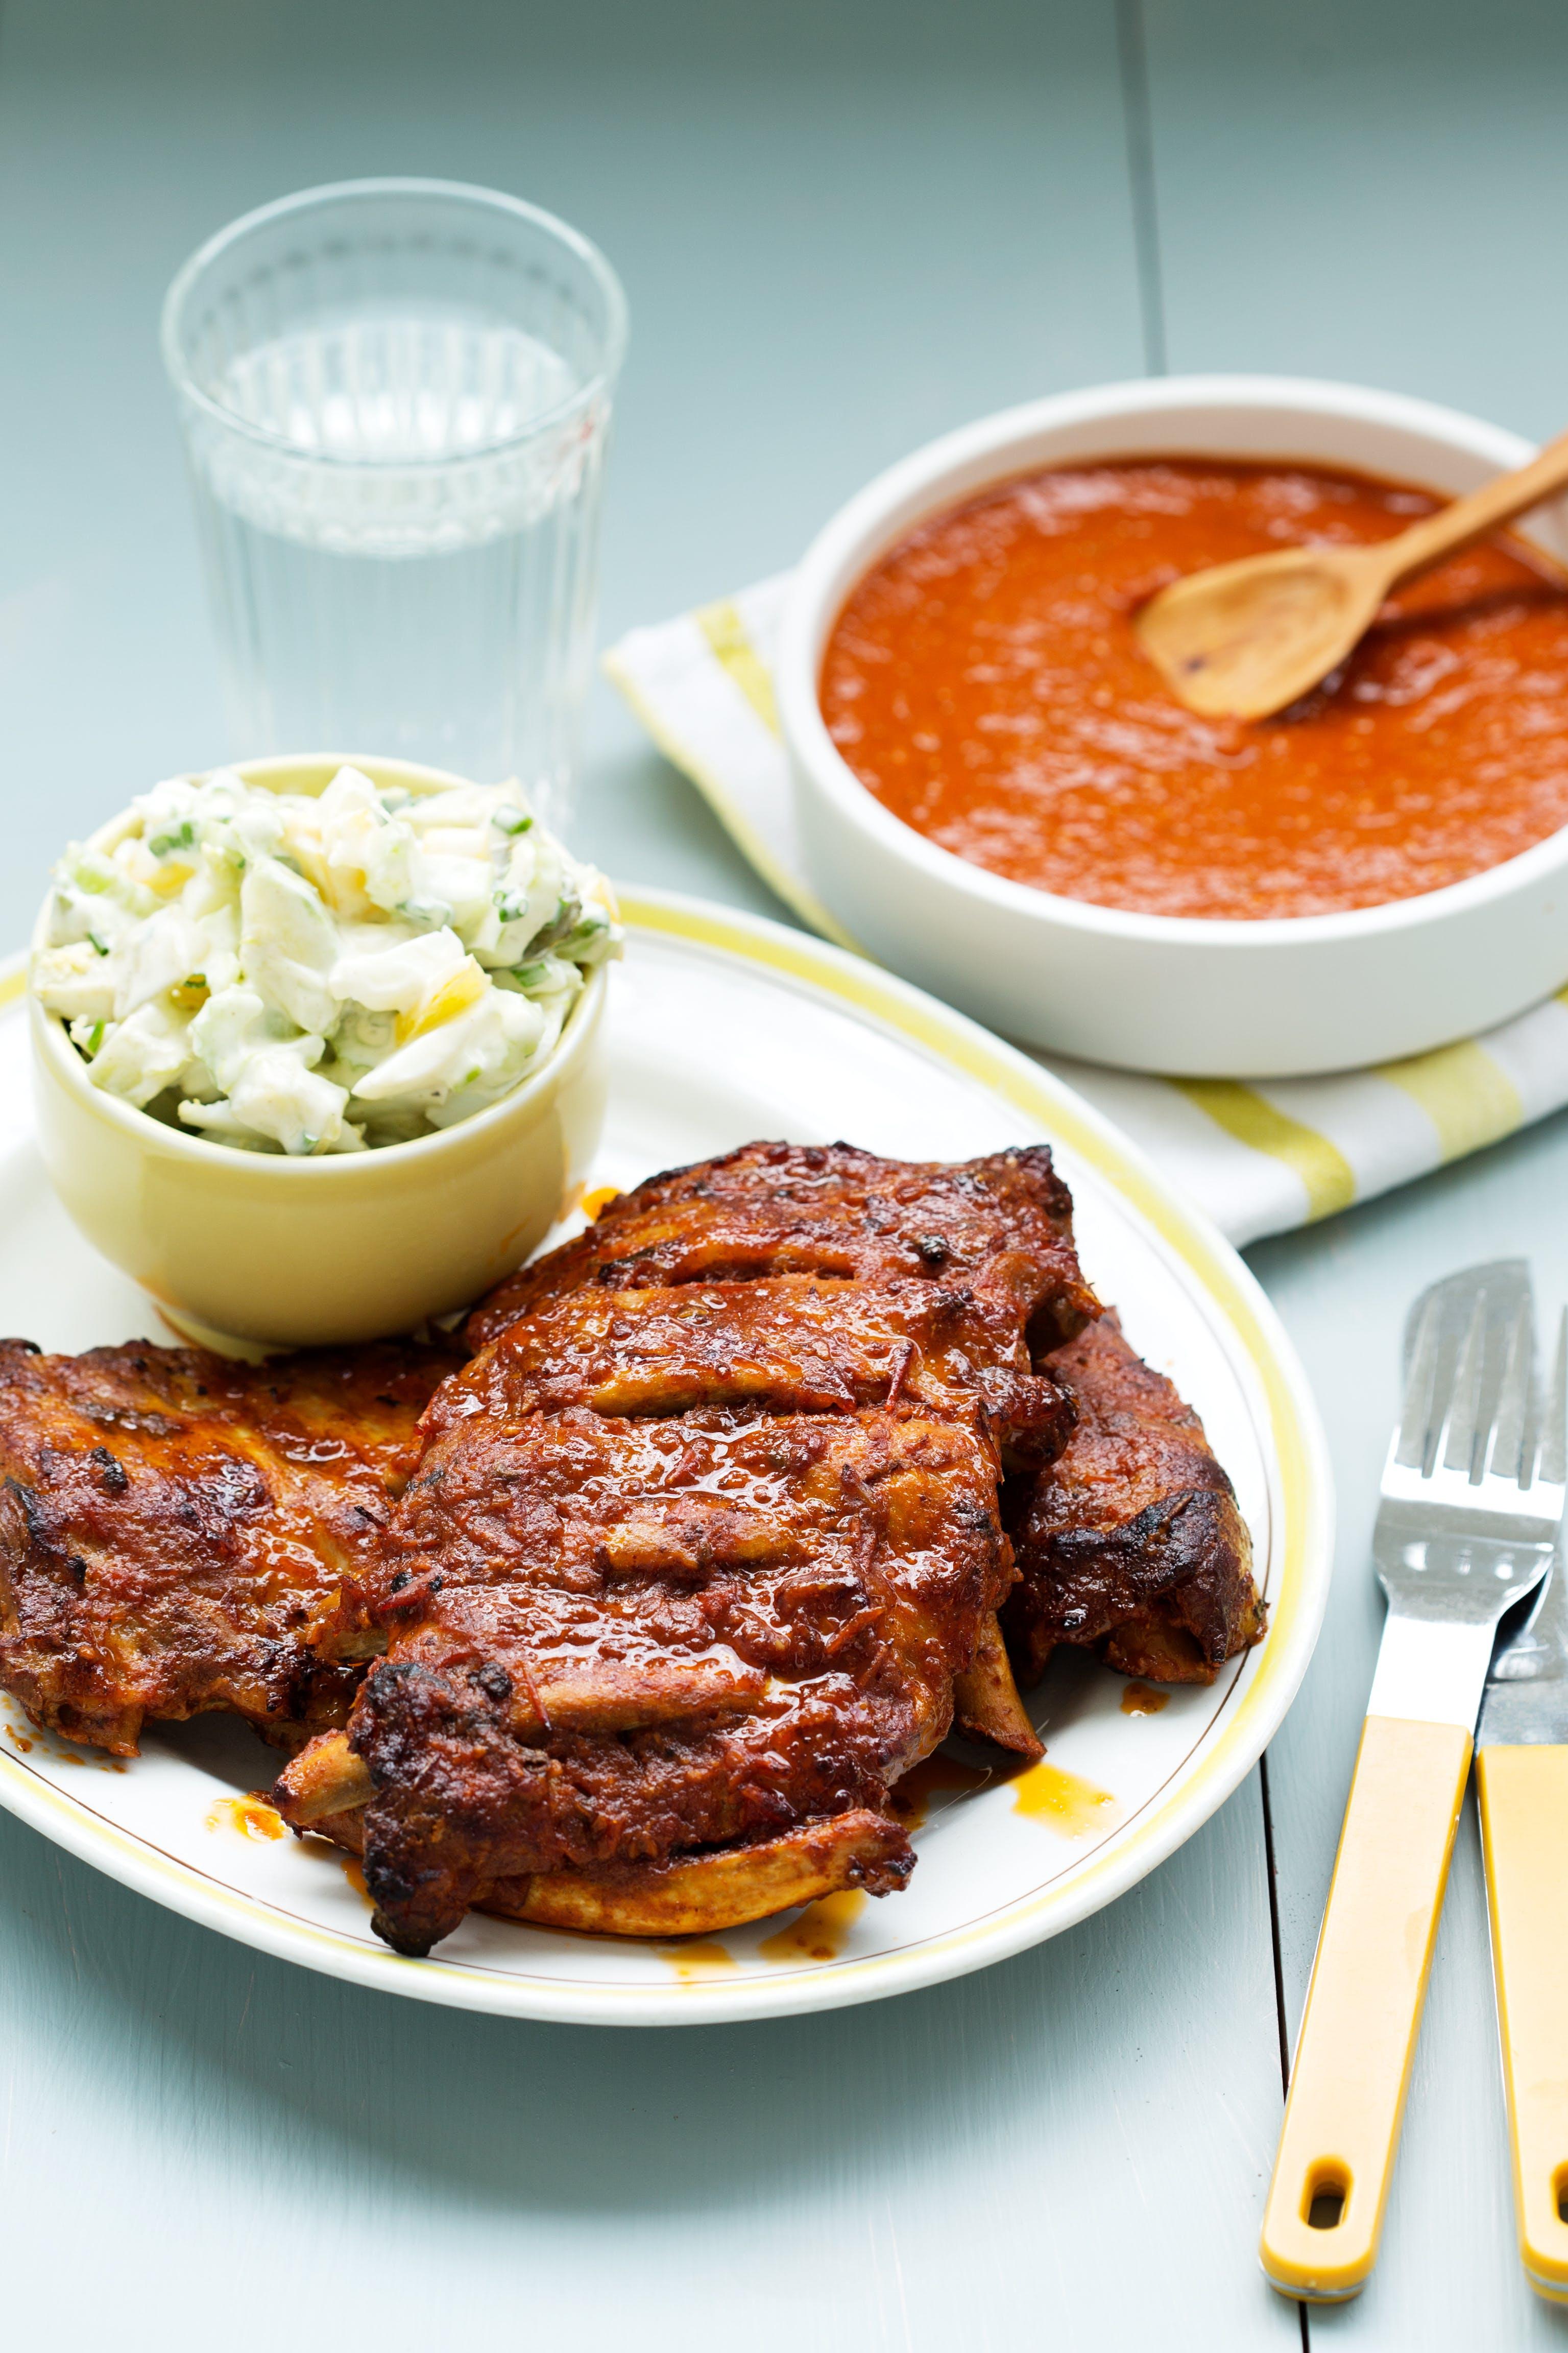 Keto BBQ ribs with creamy squash salad